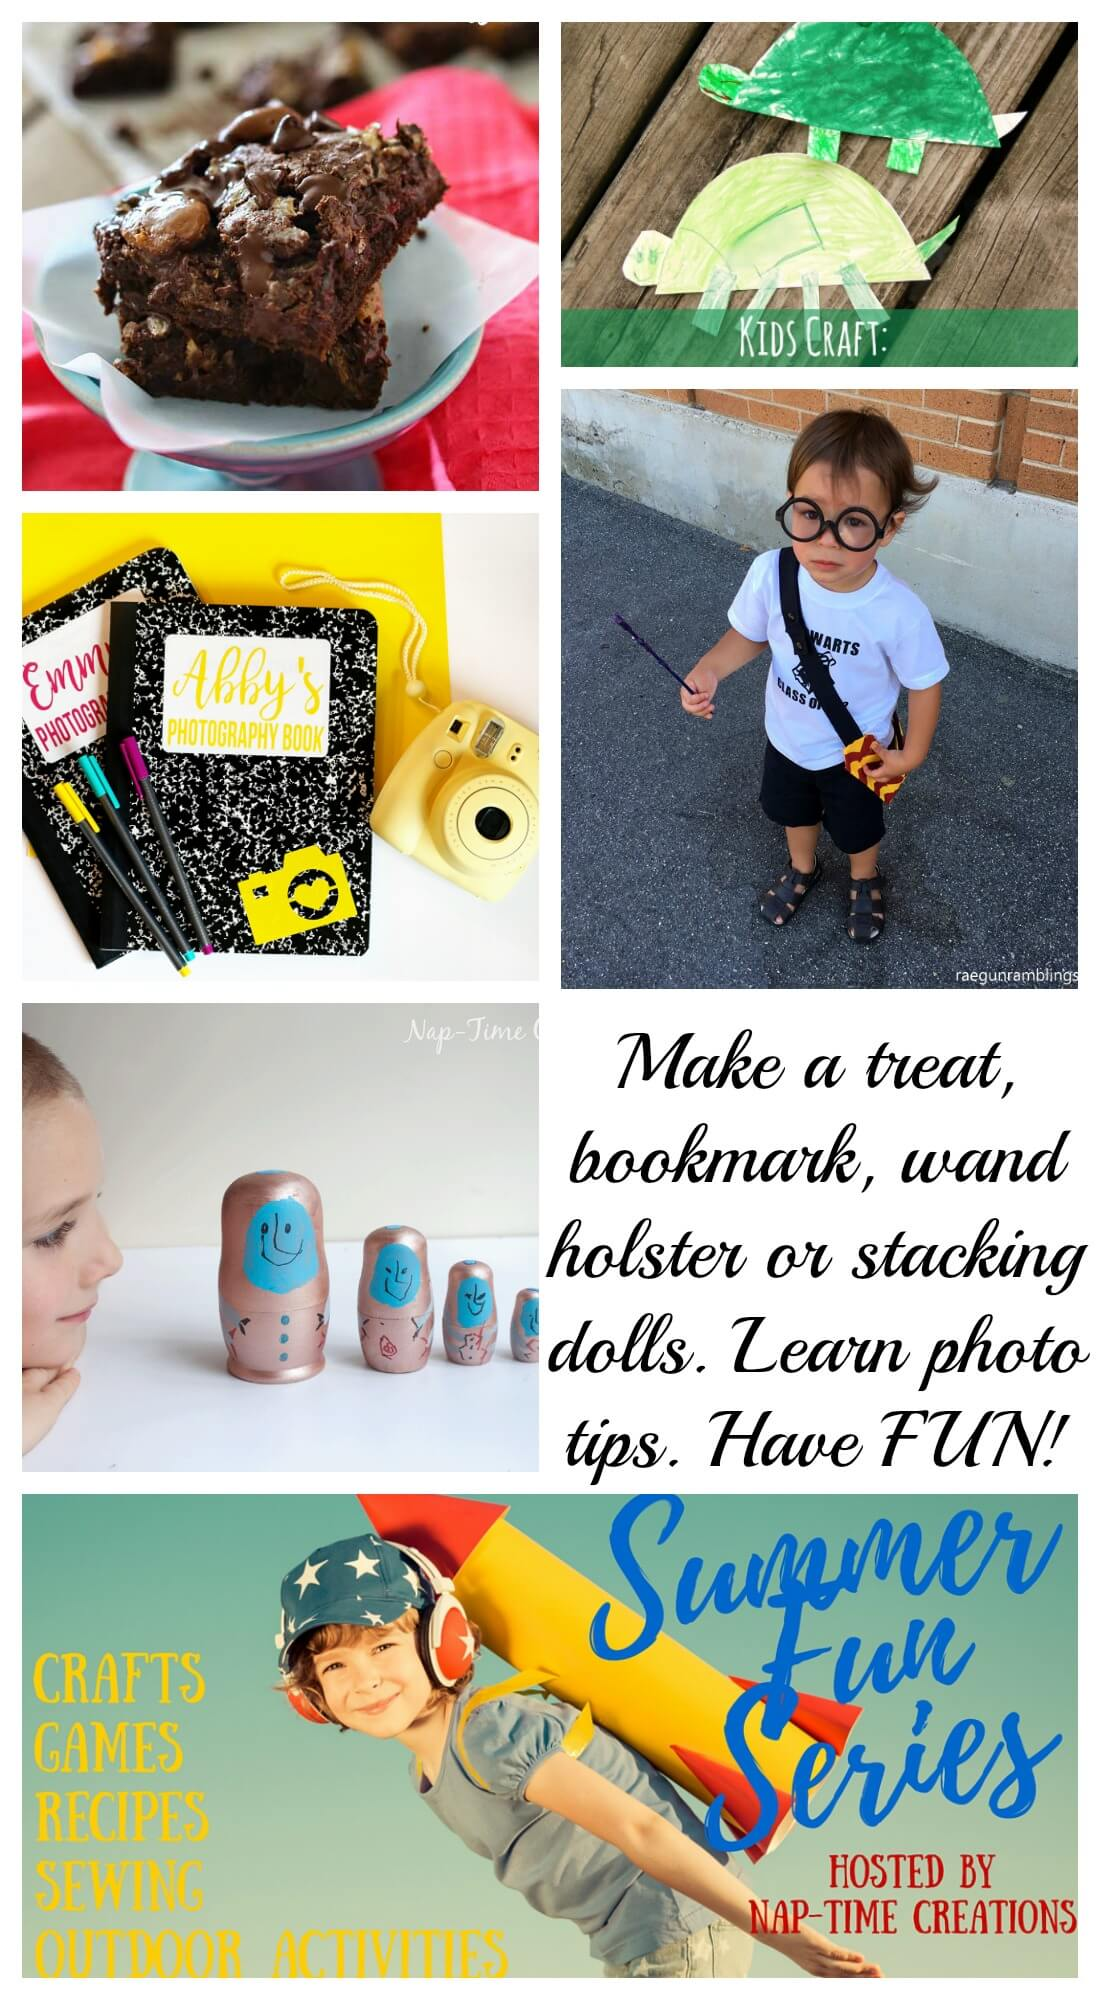 Summer Fun #6 Make a treat, bookmark, wand holster or stacking dolls. Learn kids photography tips all on Nap-Time Creations